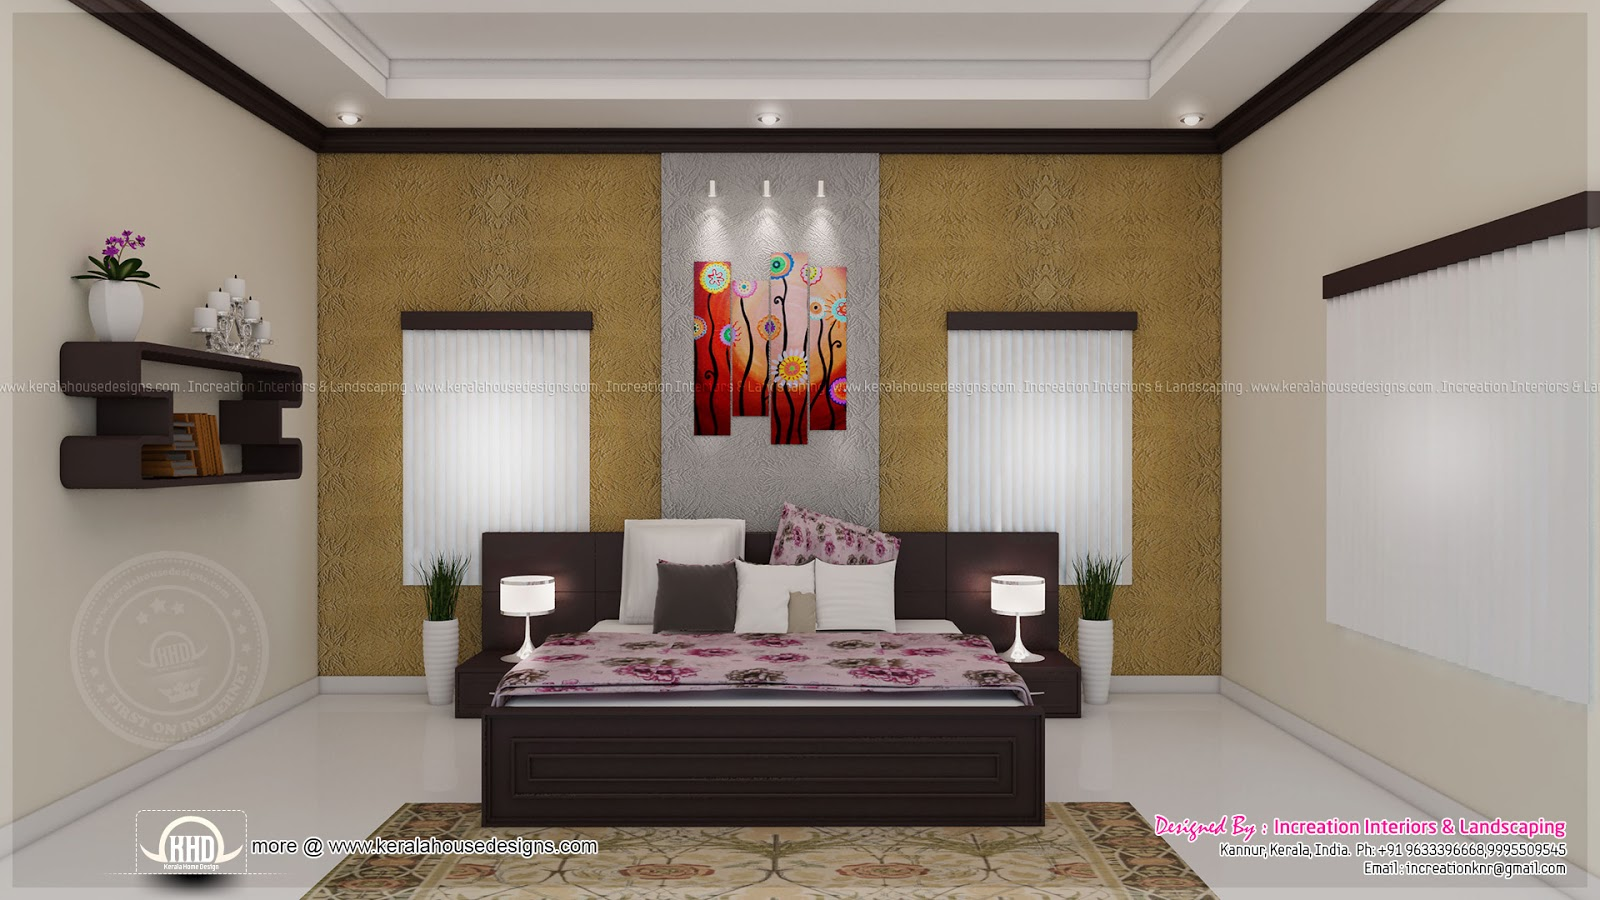 House interior ideas in 3d rendering kerala home design for Dining room ideas kerala